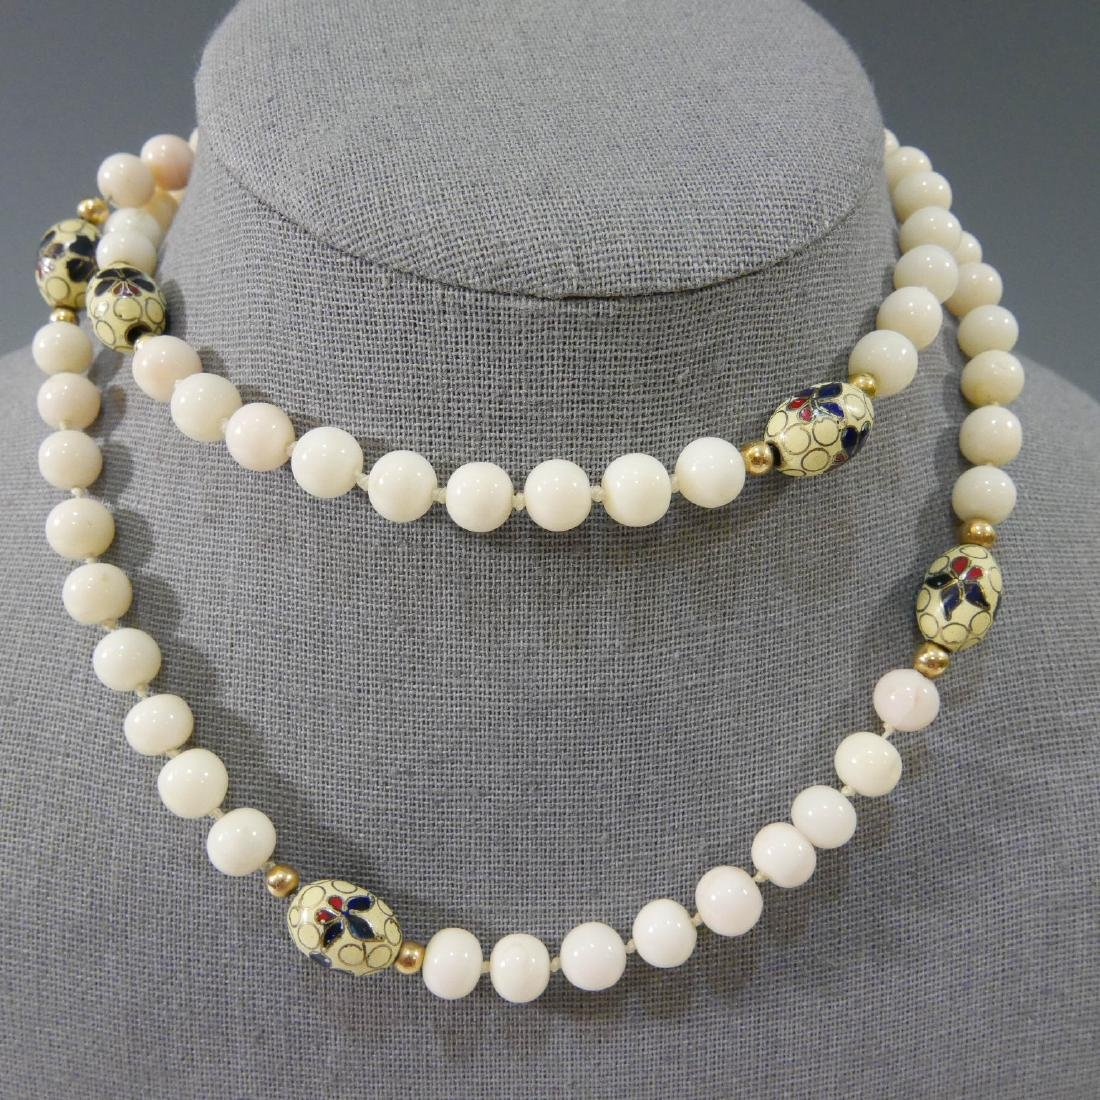 ANGEL SKIN CORAL AND ENAMEL BEADS NECKLACE